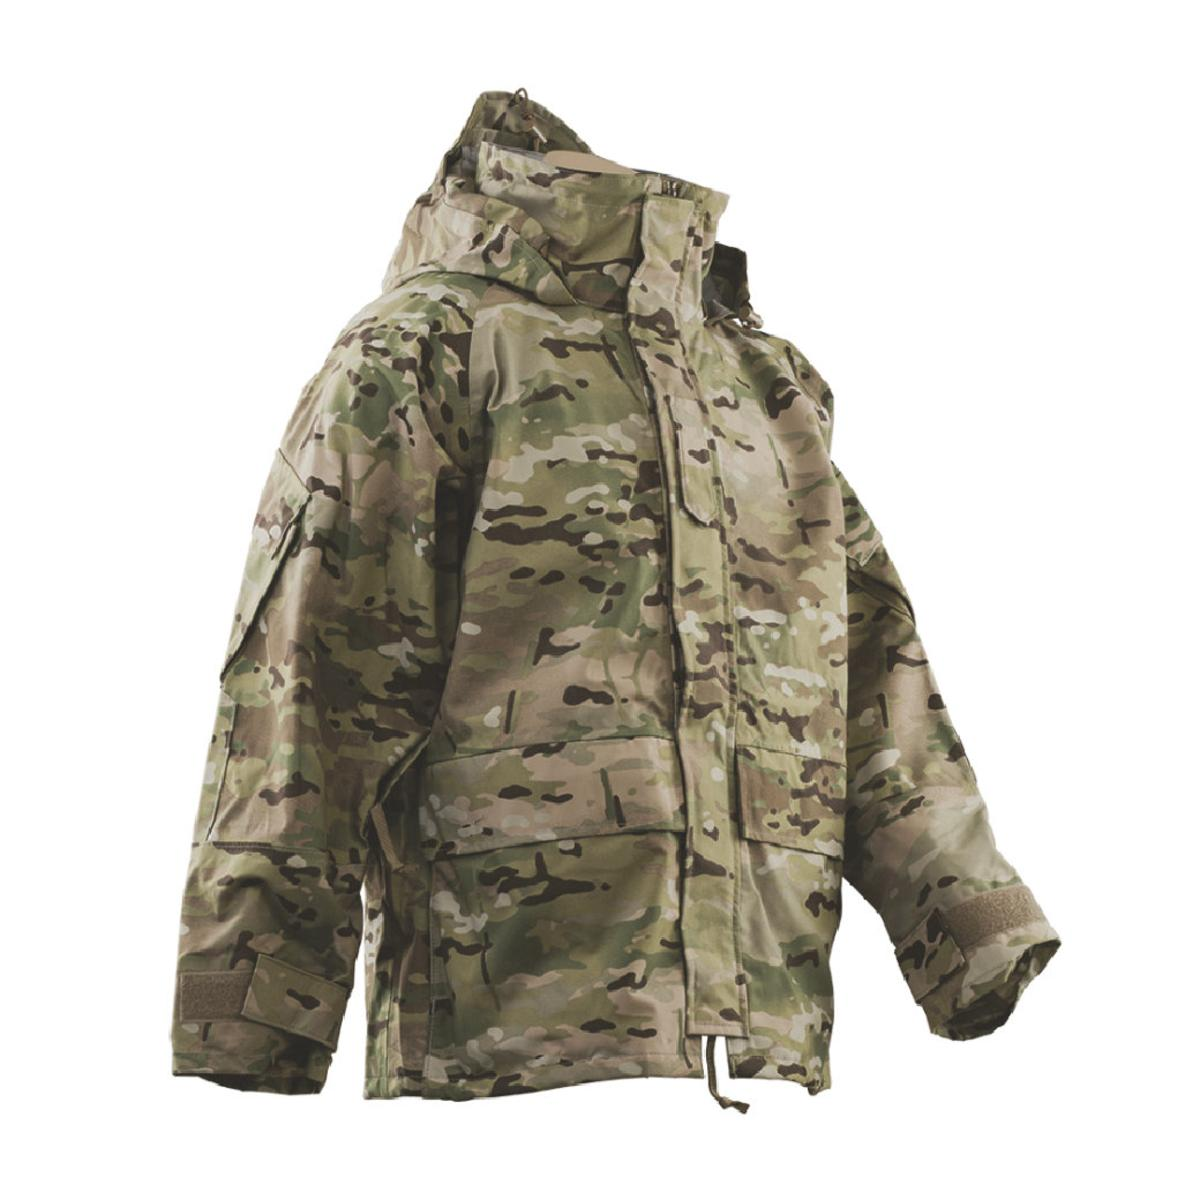 Tru-Spec 2026 H2O Proof Gen 2 ECWCS Parka, MultiCam